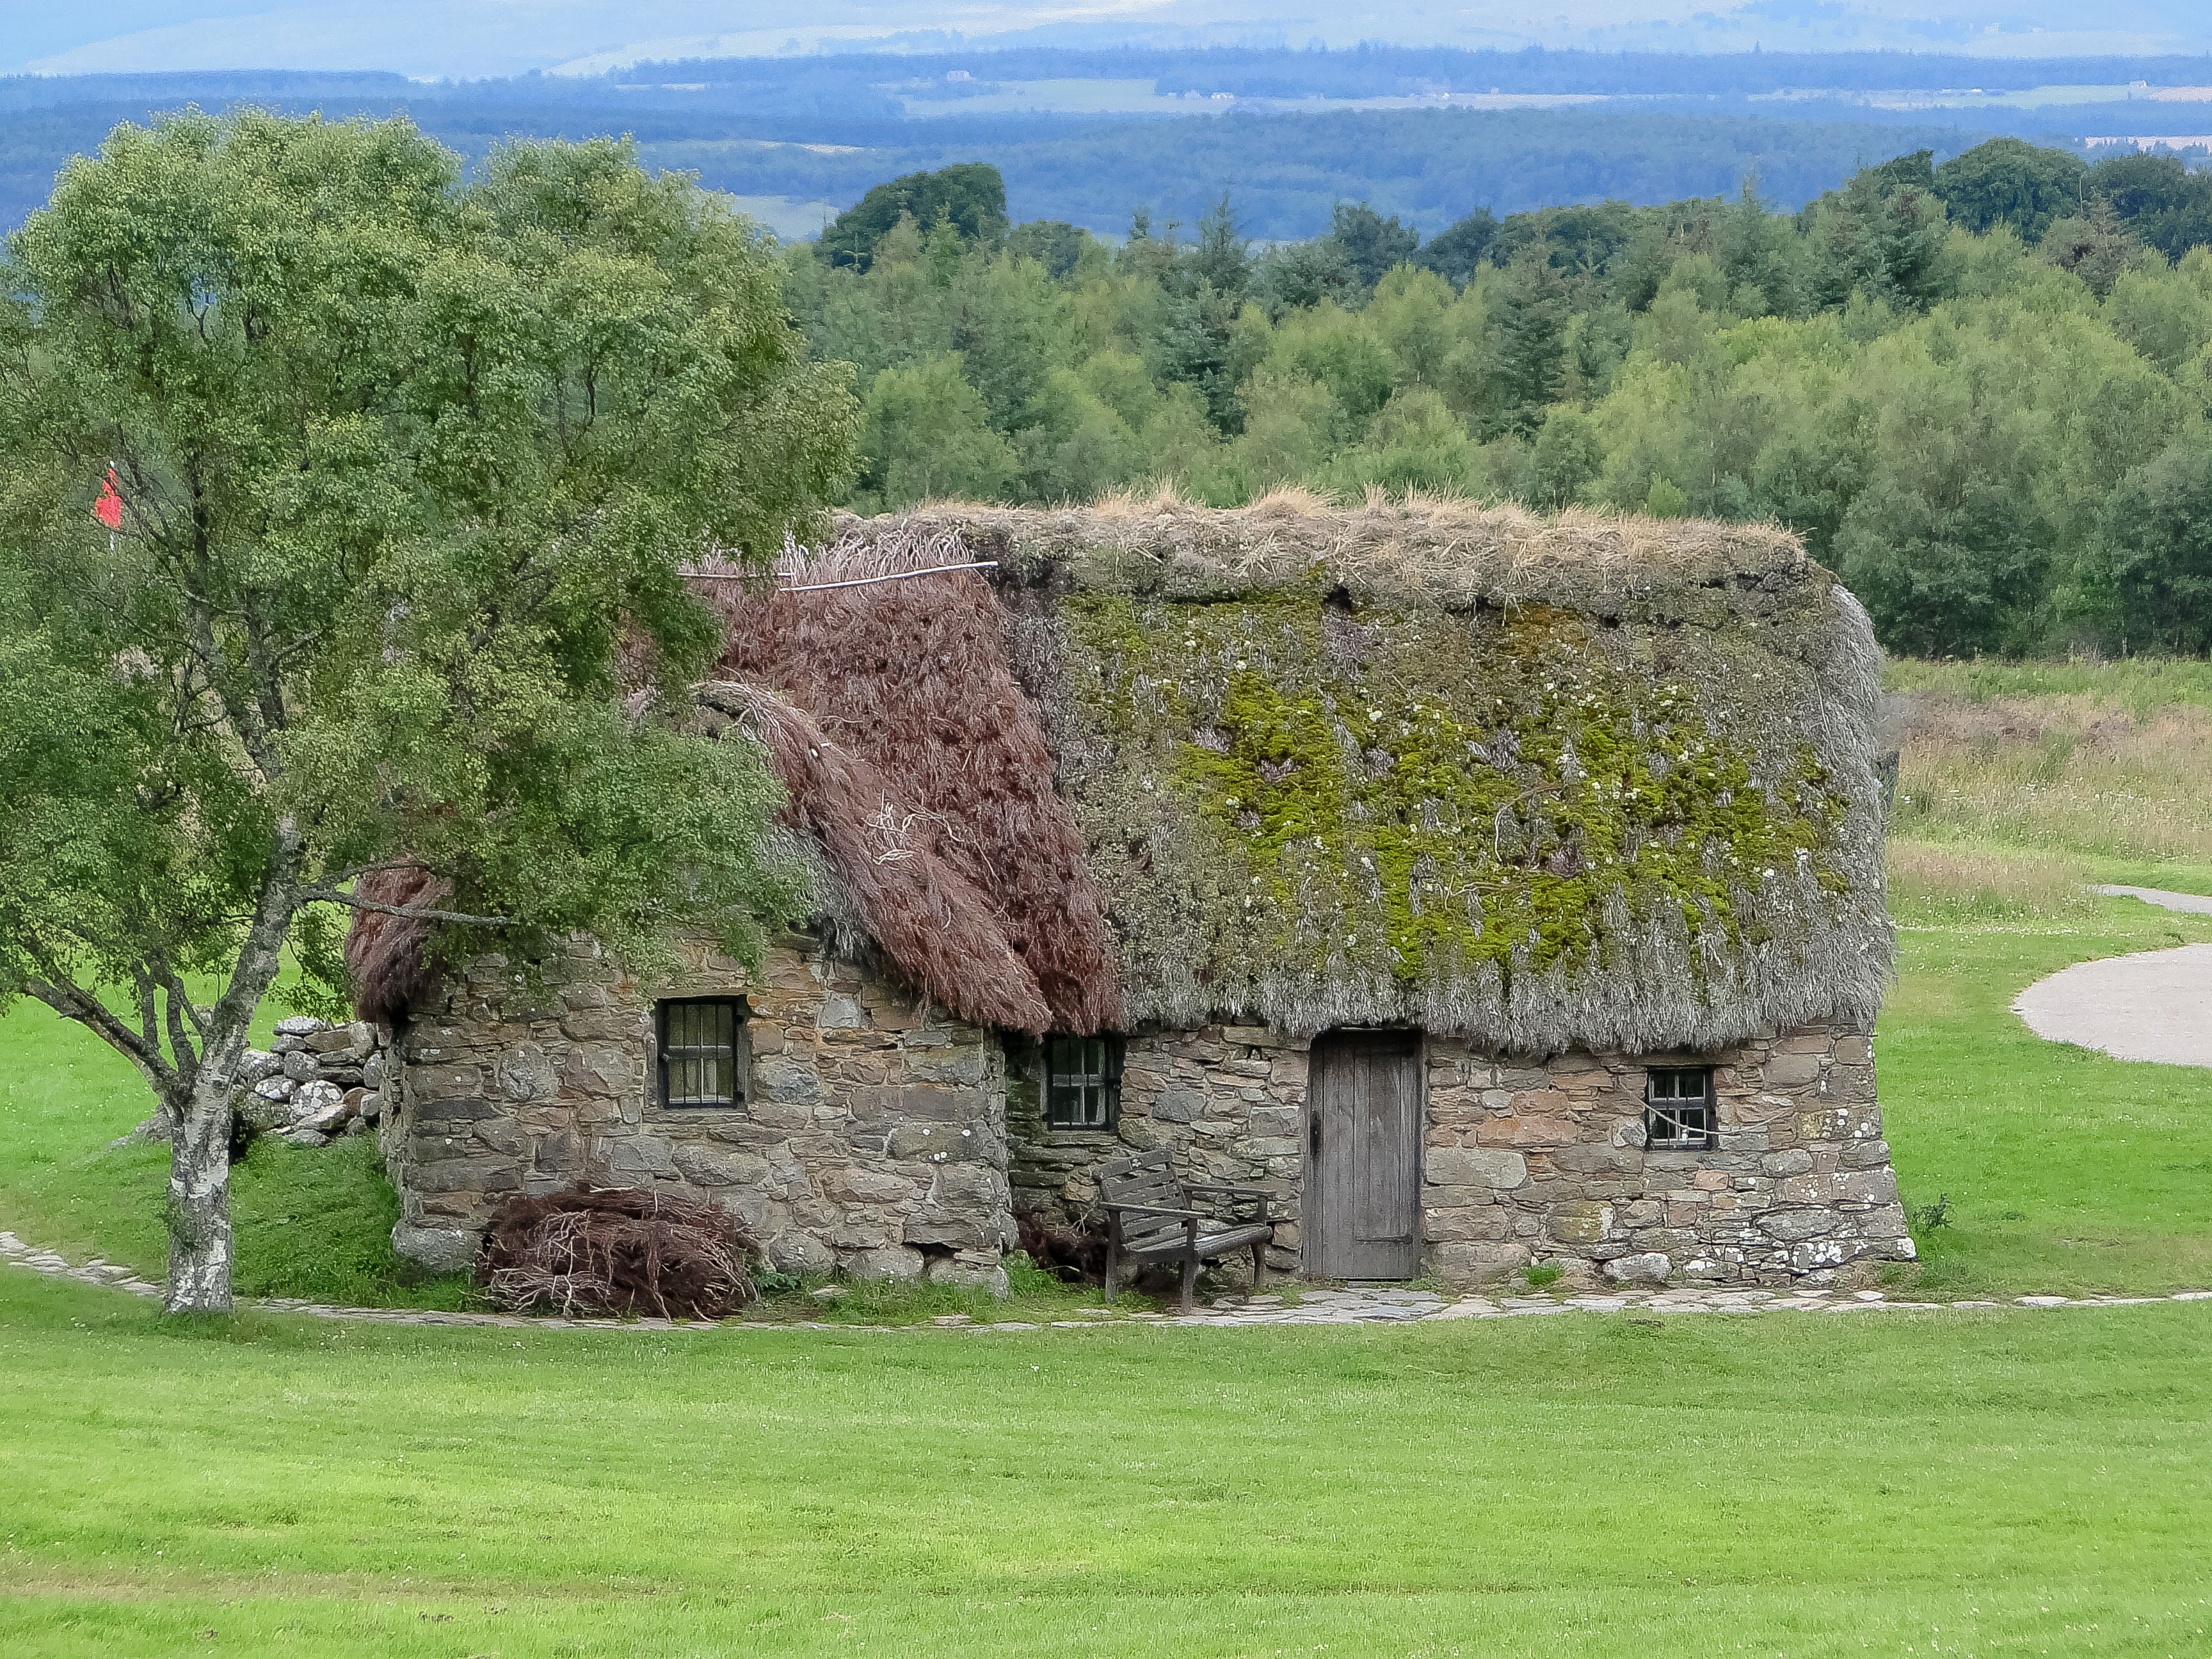 The Building Is Made Of Stone But Has Dirt Floors And A Roof Of Heather Description From Theromantic Scottish Cottages Scottish Countryside Cottages Scotland